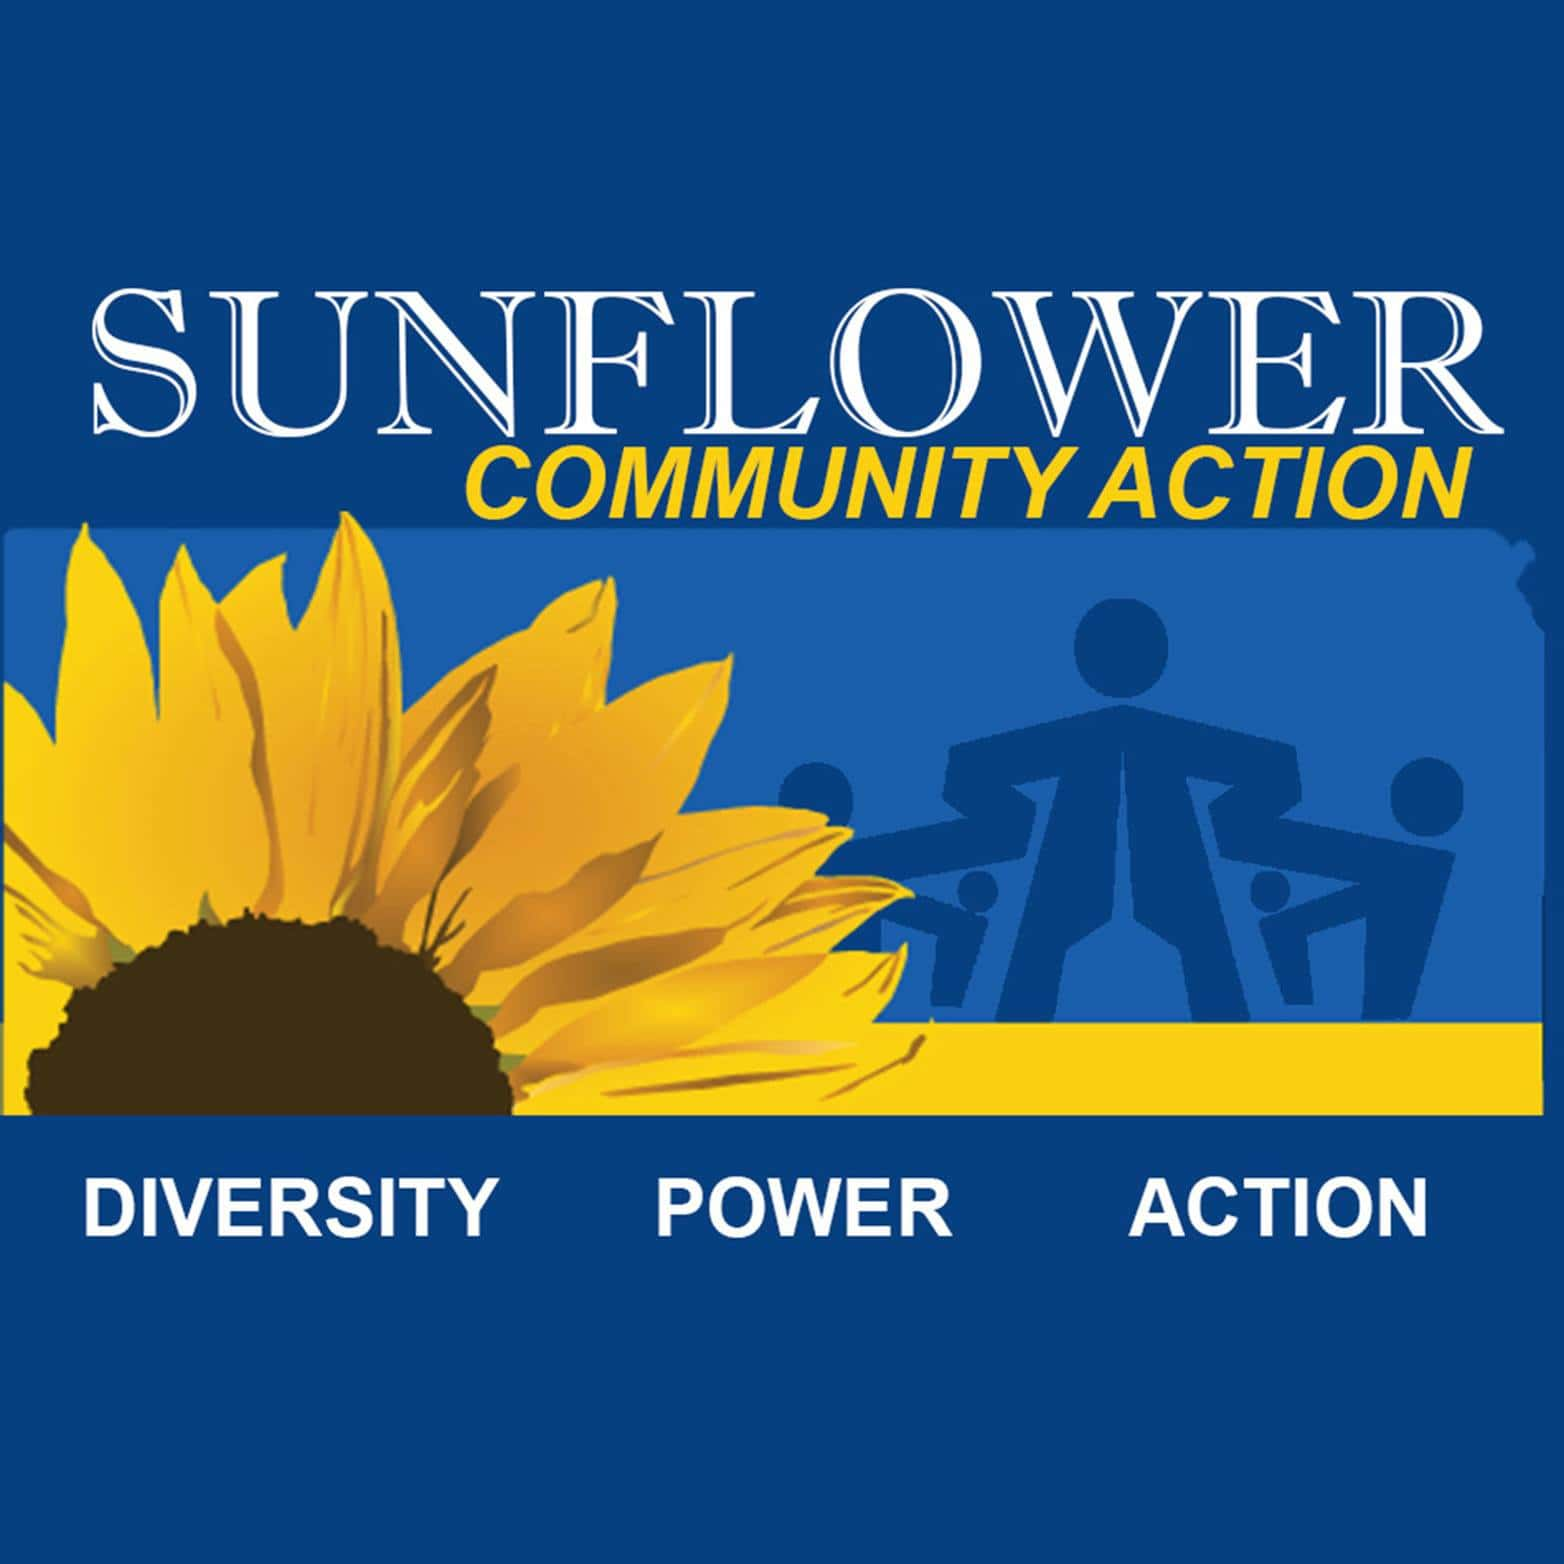 Sunflower Community Action/Facebook